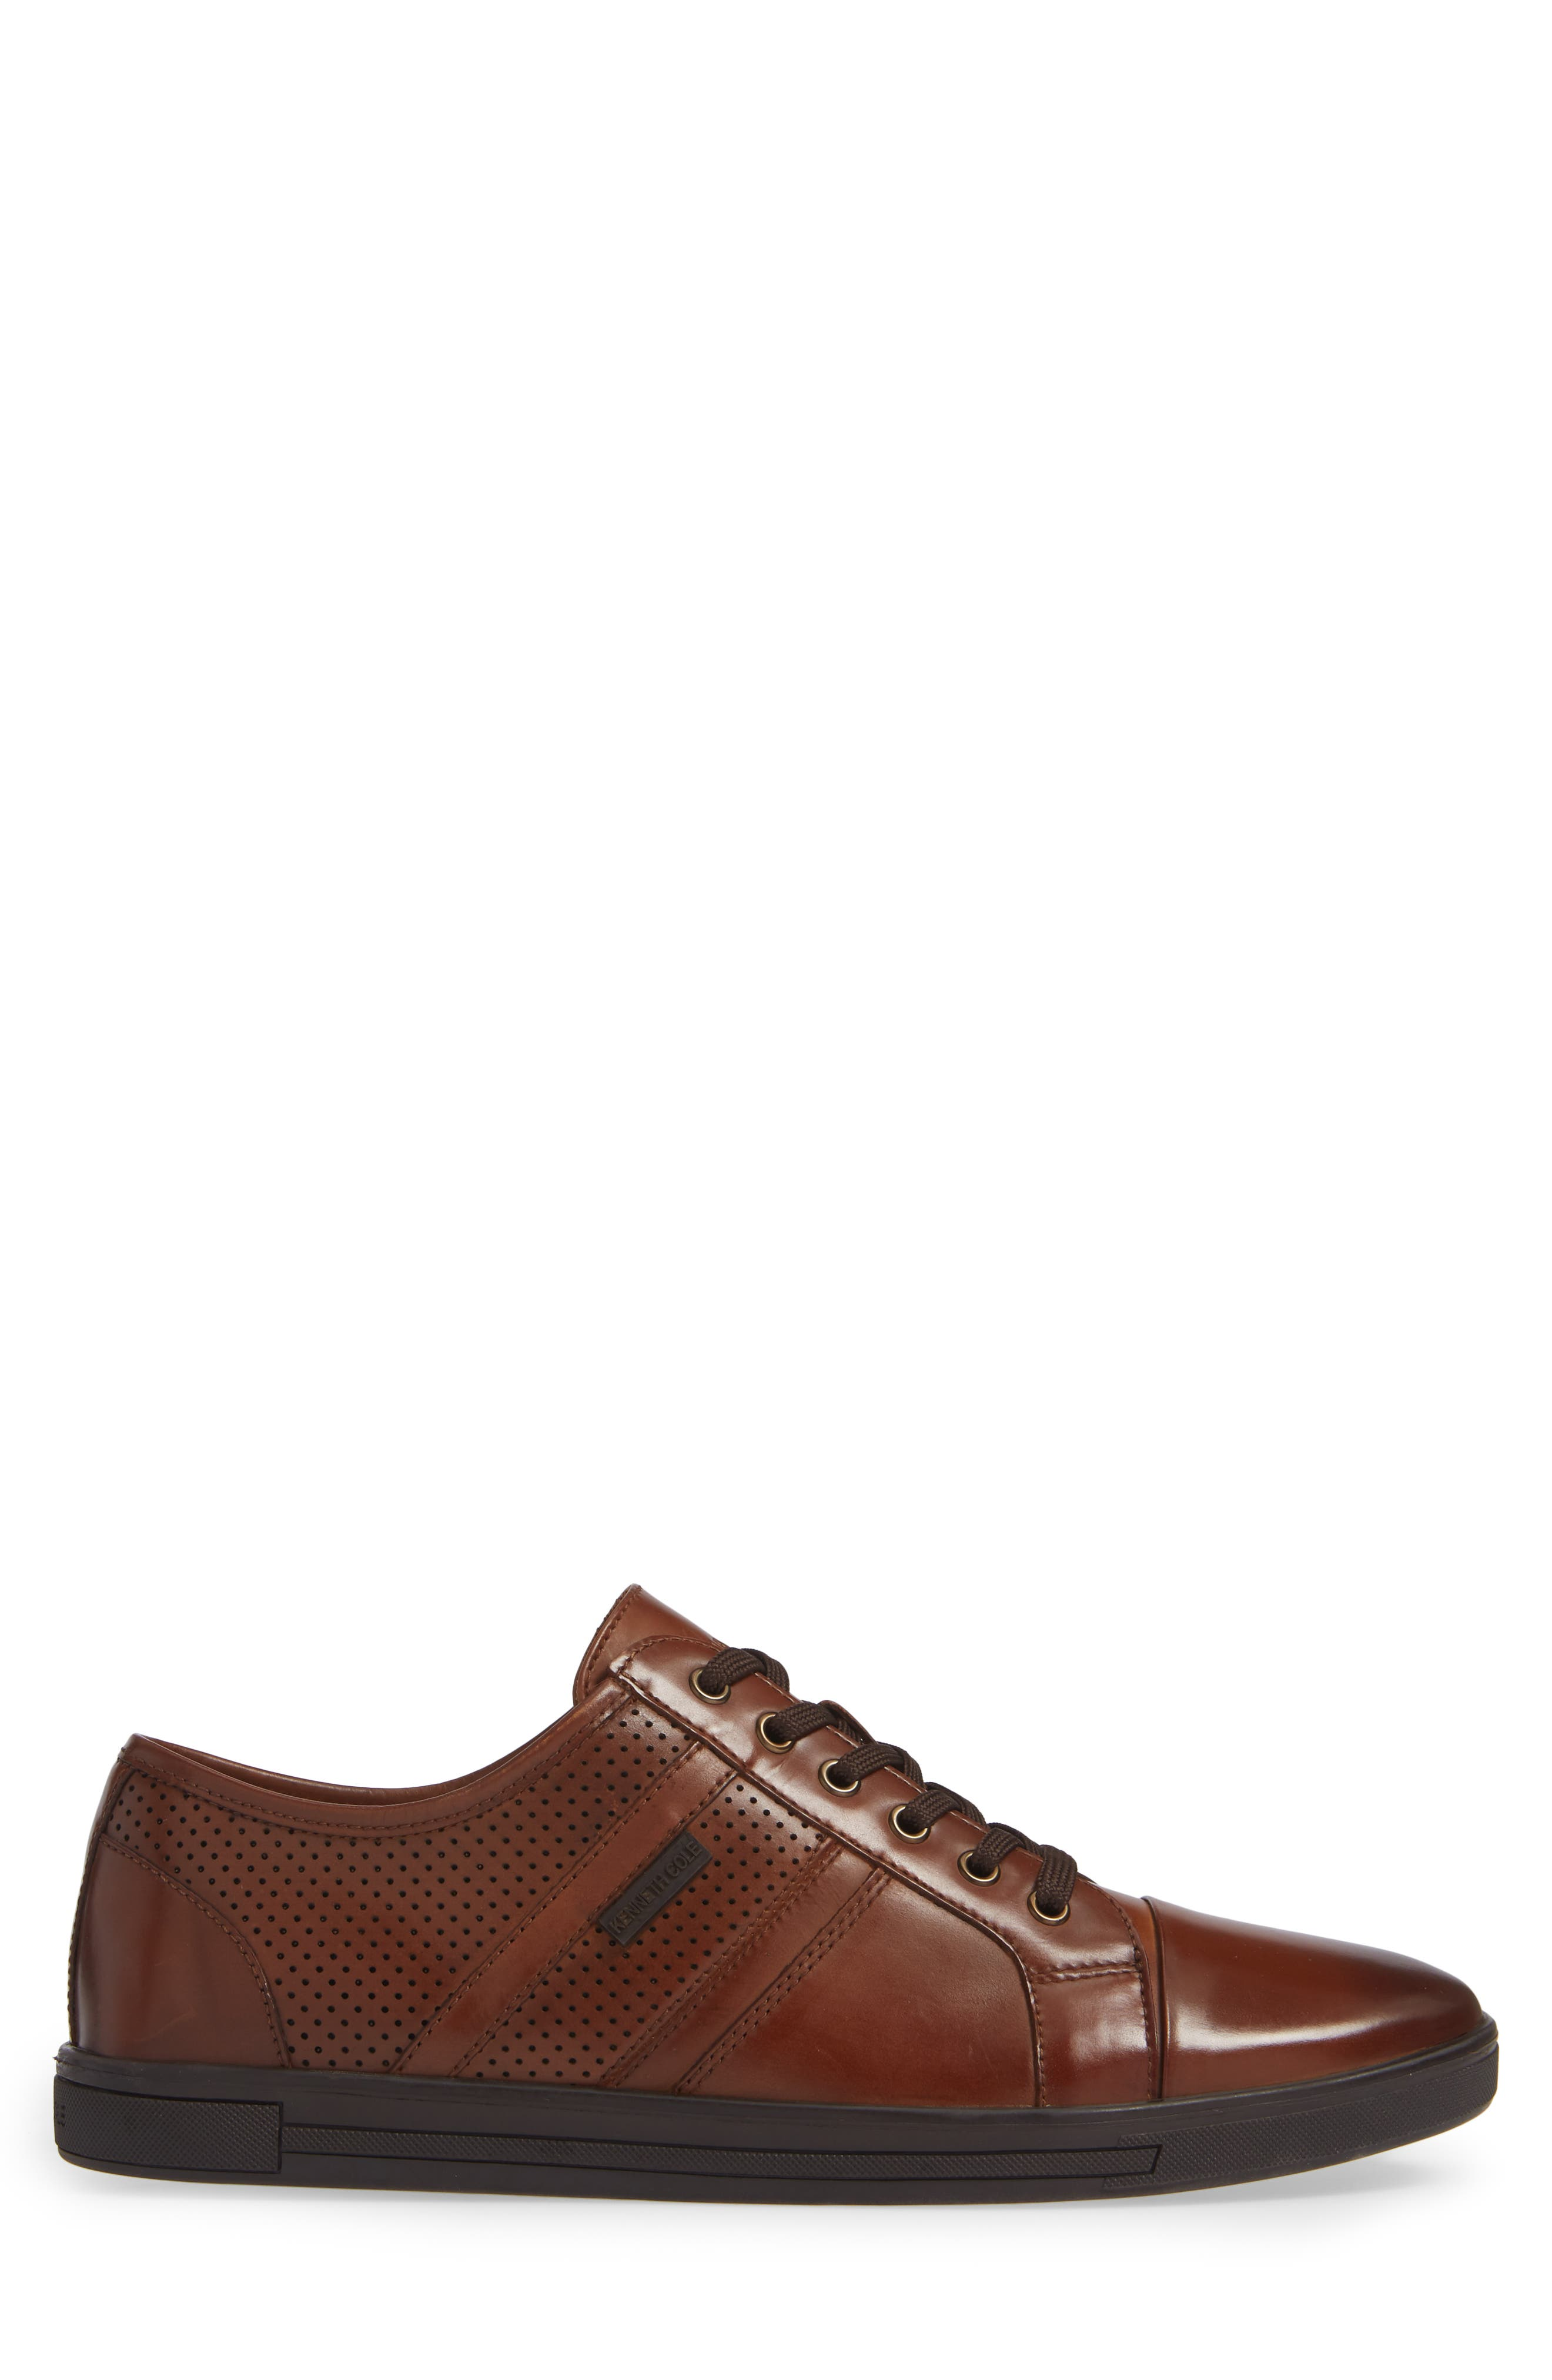 Initial Step Sneaker,                             Alternate thumbnail 3, color,                             COGNAC LEATHER